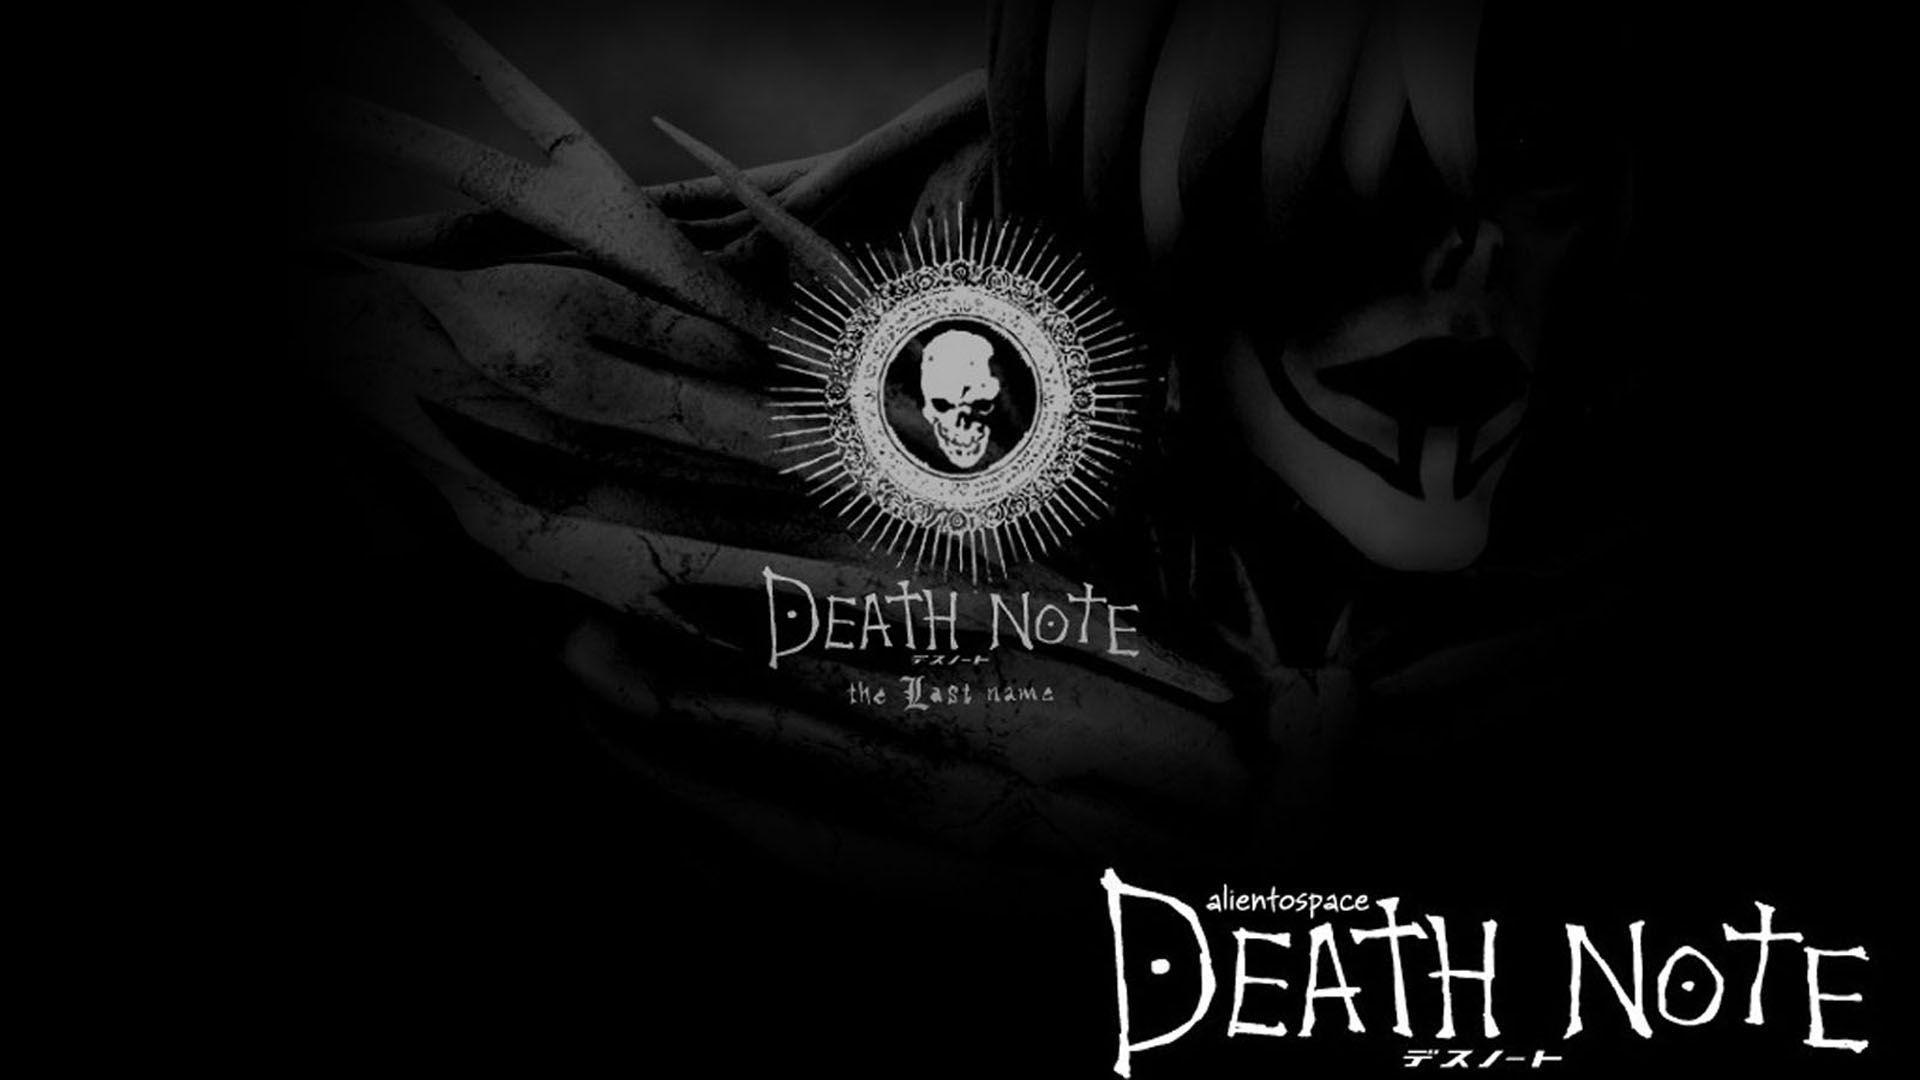 Death note wallpaper - Taringa!